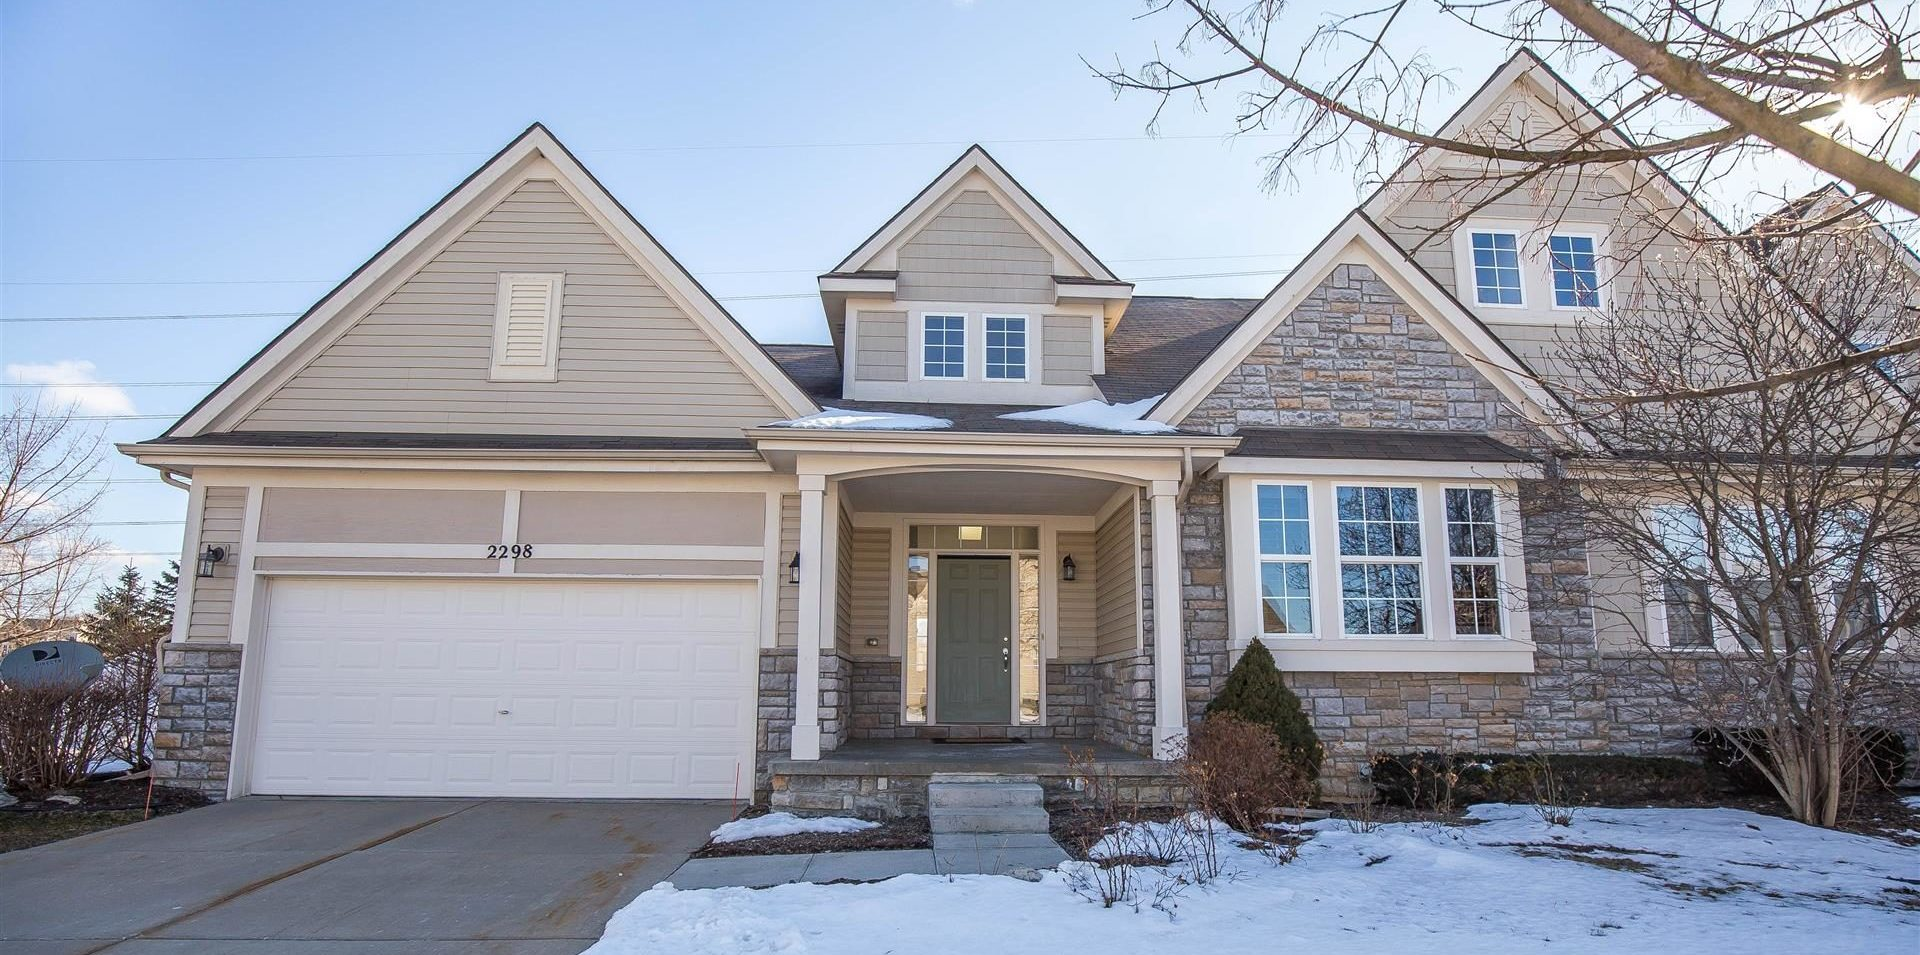 SOLD!!! 2298 Calibouge – Commerce Township 48382